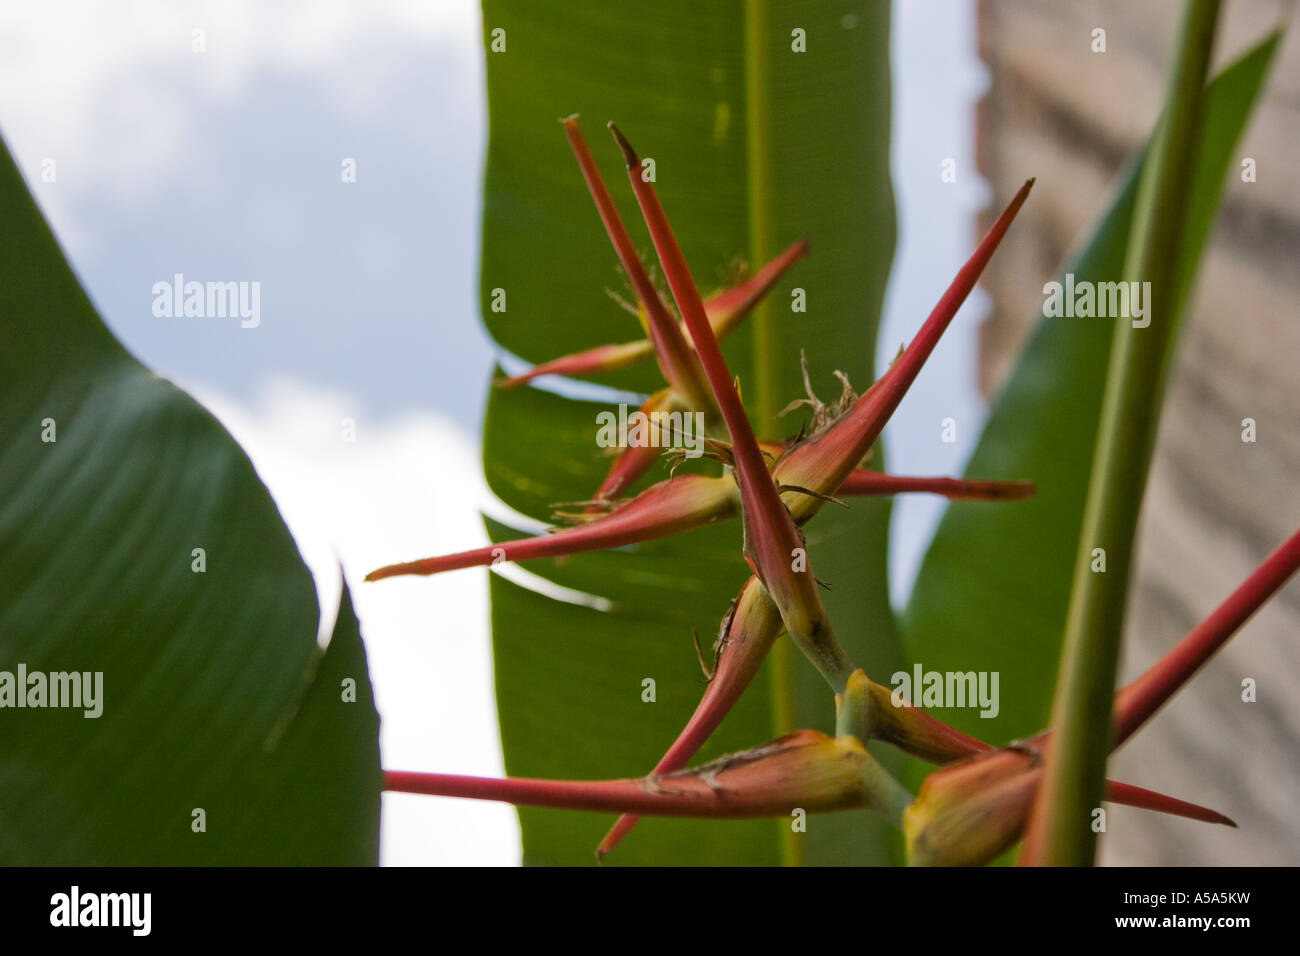 Heliconia flower seen from the underside - Stock Image